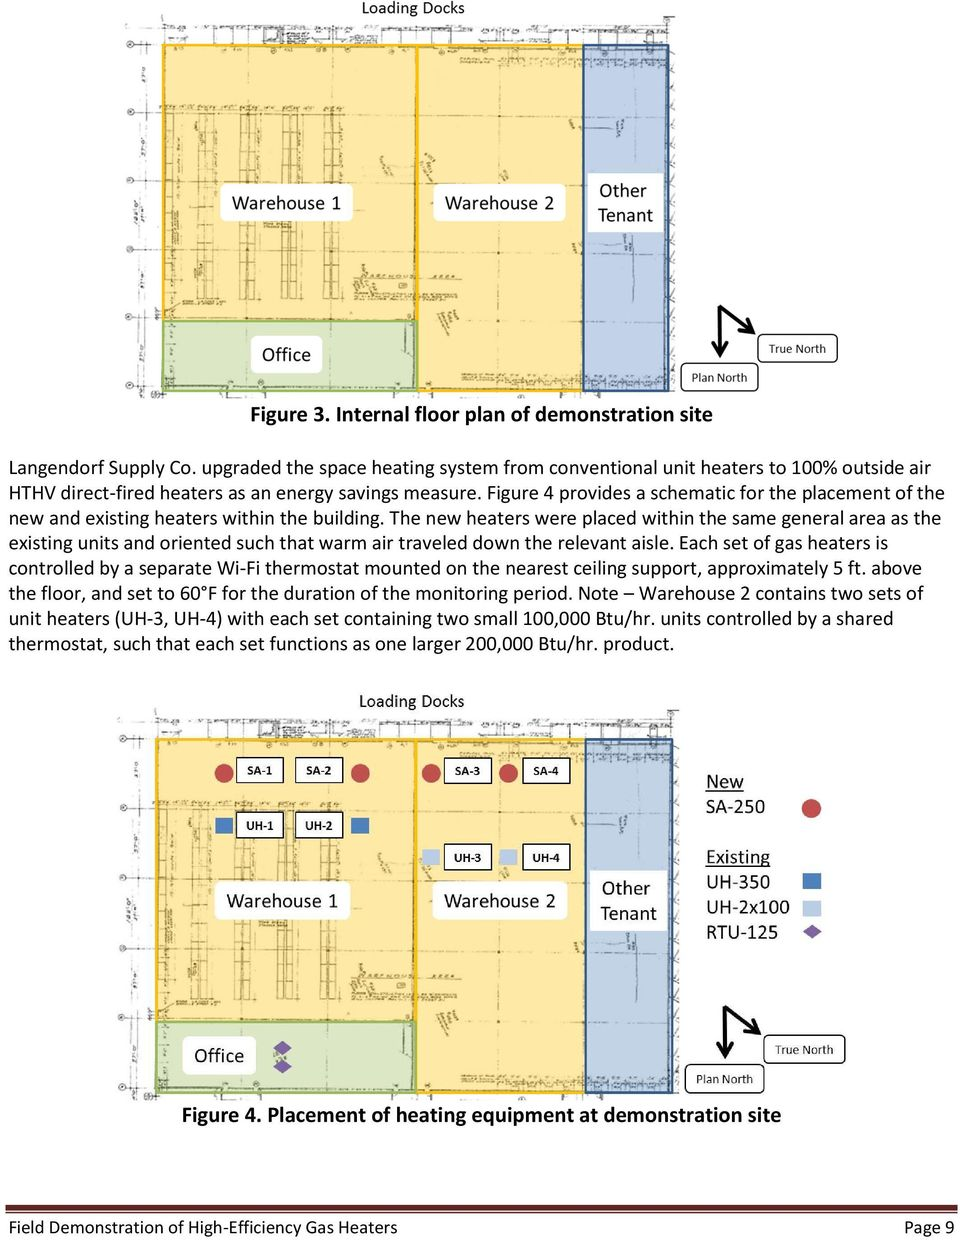 Figure 4 provides a schematic for the placement of the new and existing heaters within the building.